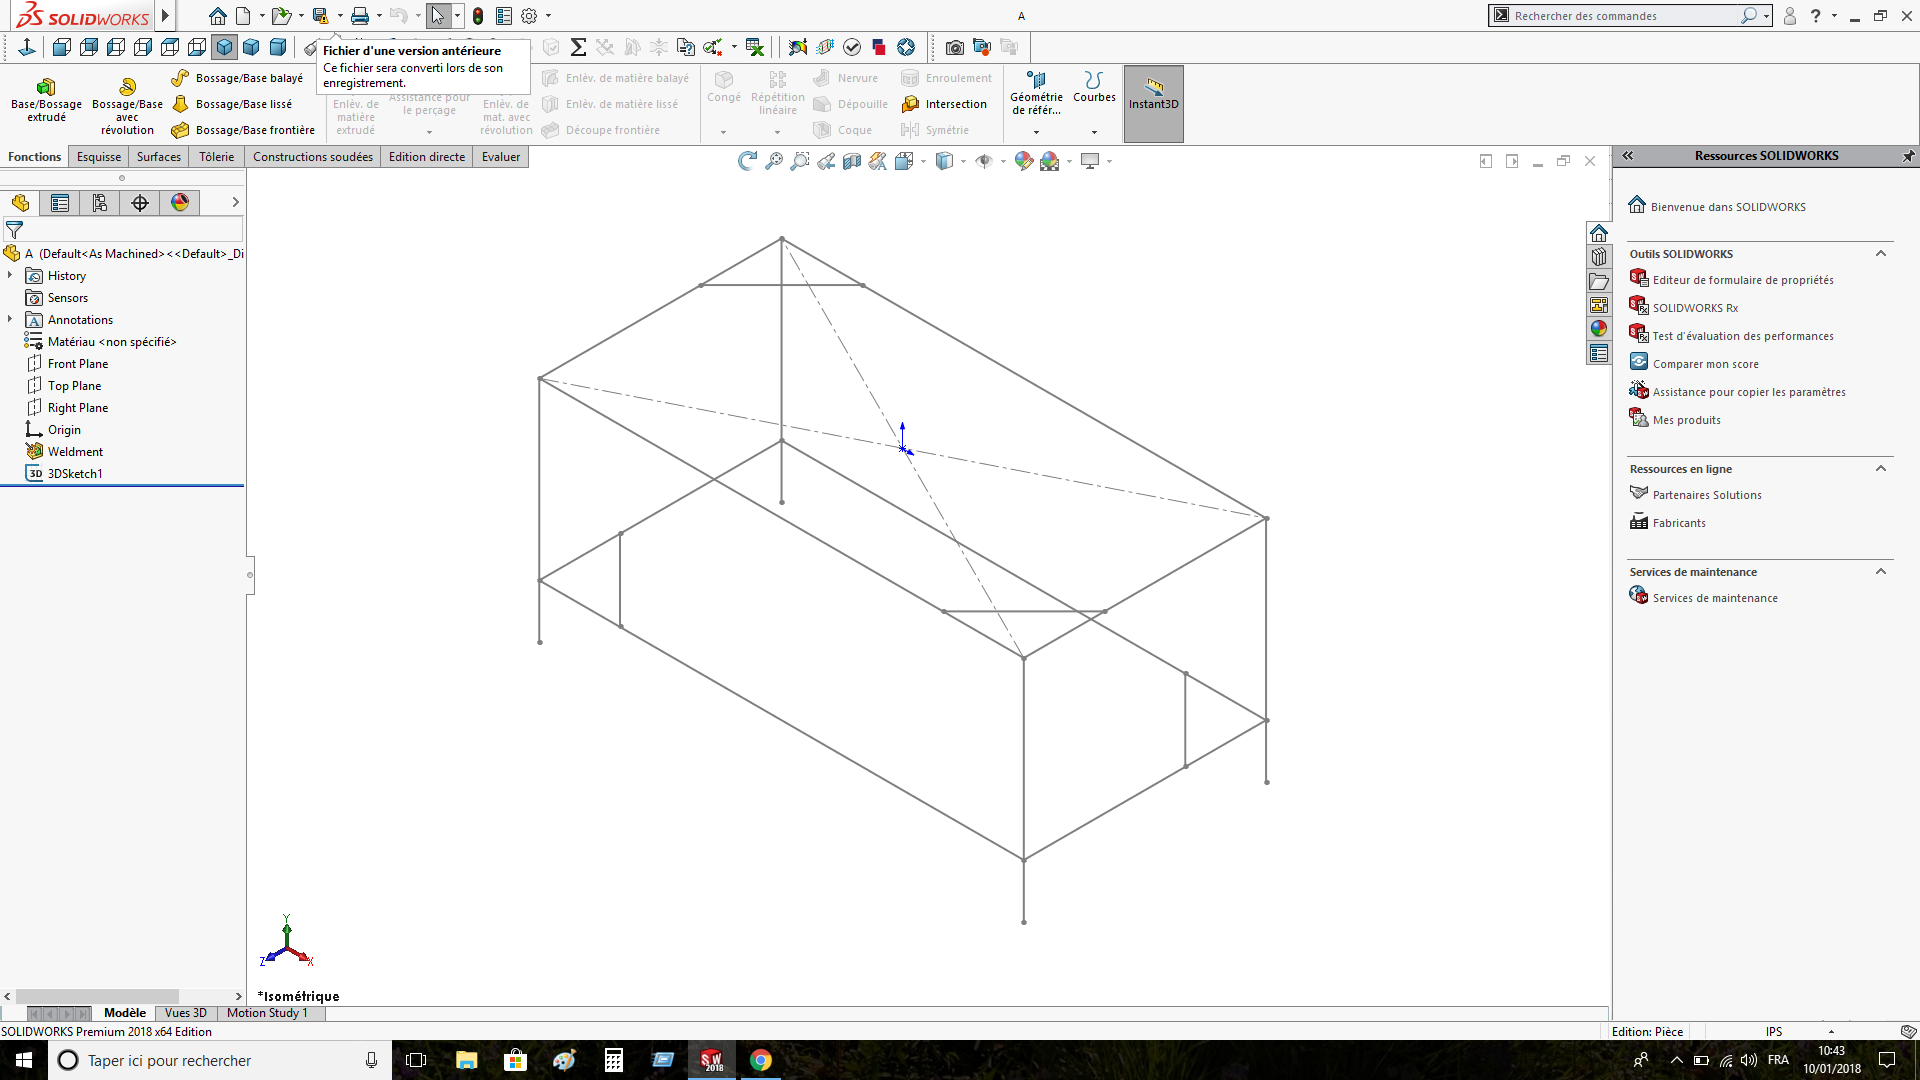 How to save sketches in solidworks for old version users